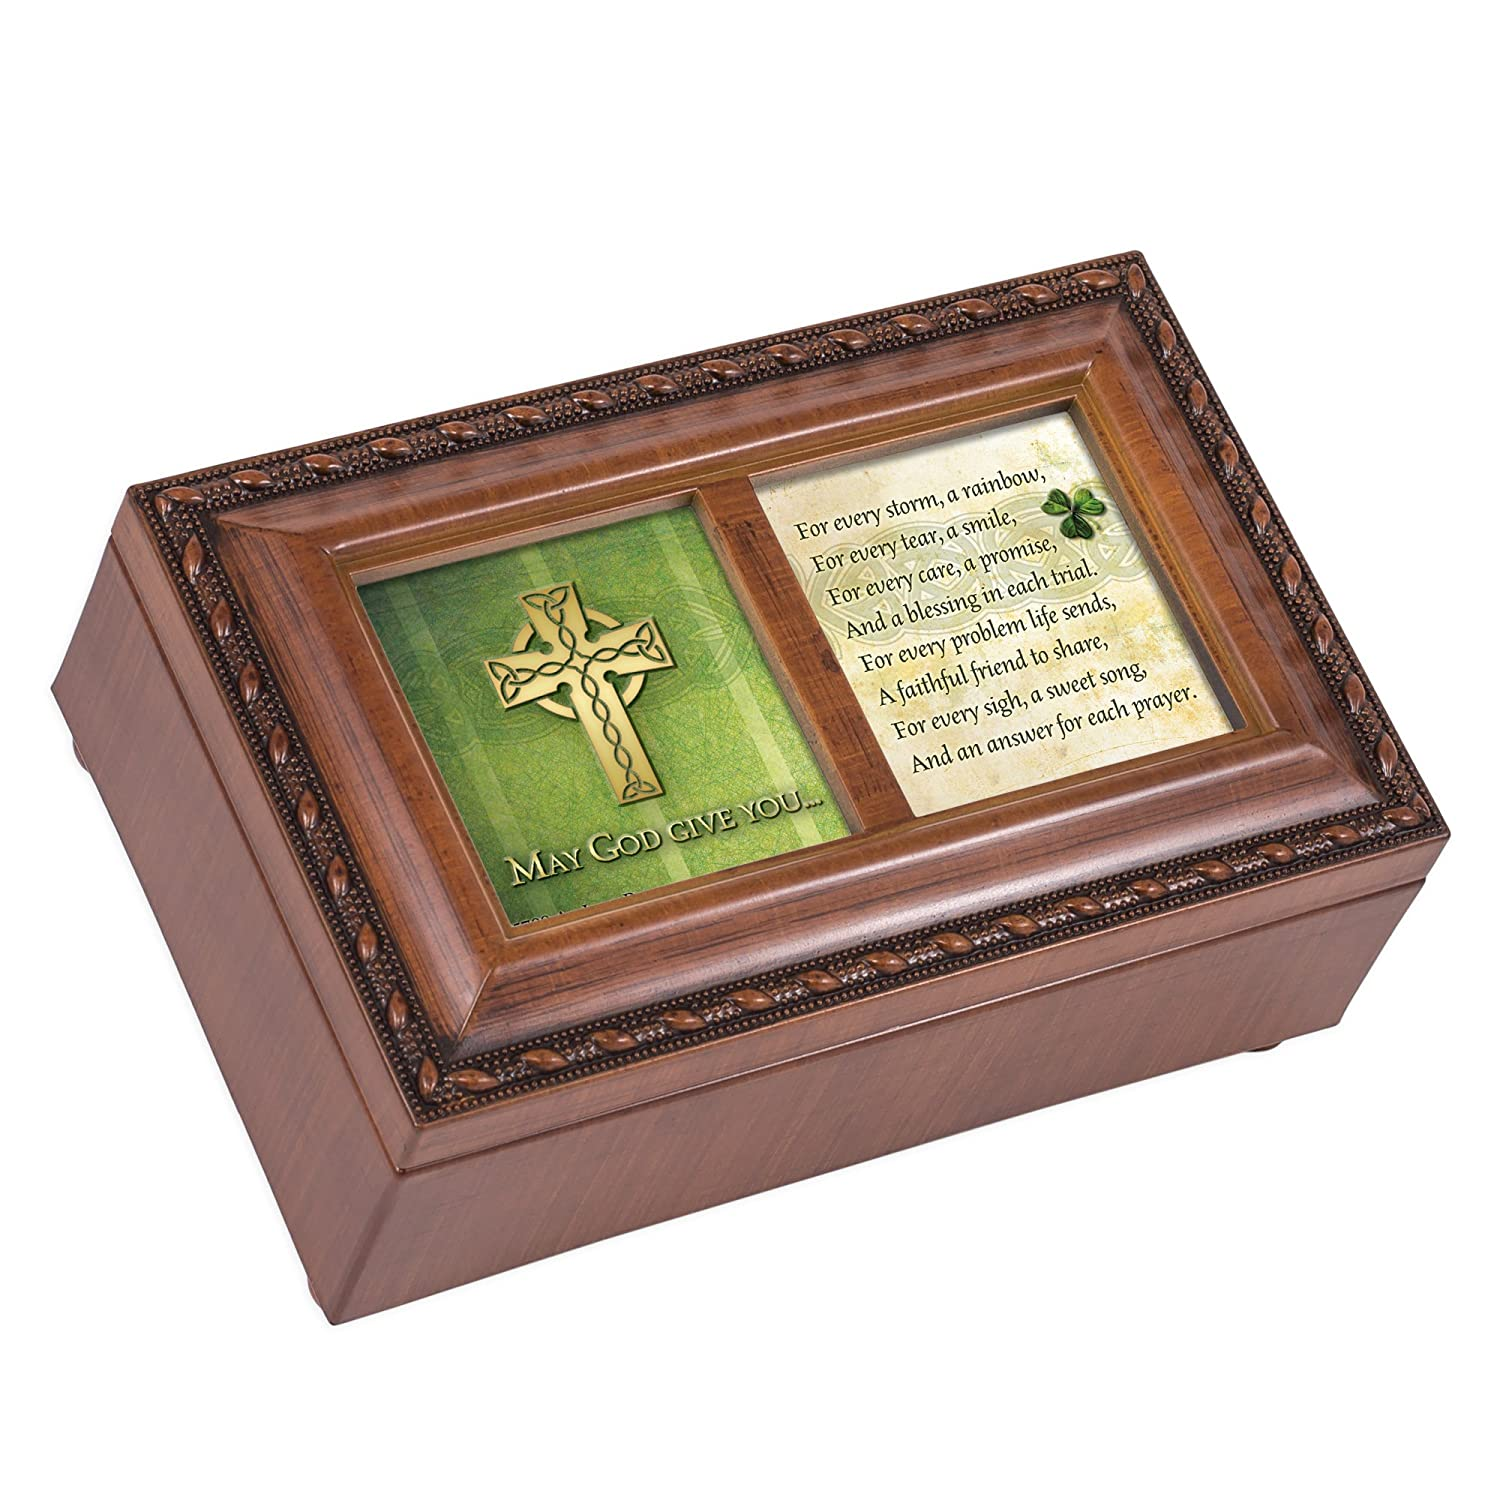 May God Give You Celtic Cross Petite Woodgrain Music Musical Jewelry Box Plays Amazing Grace Cottage Garden PM5700